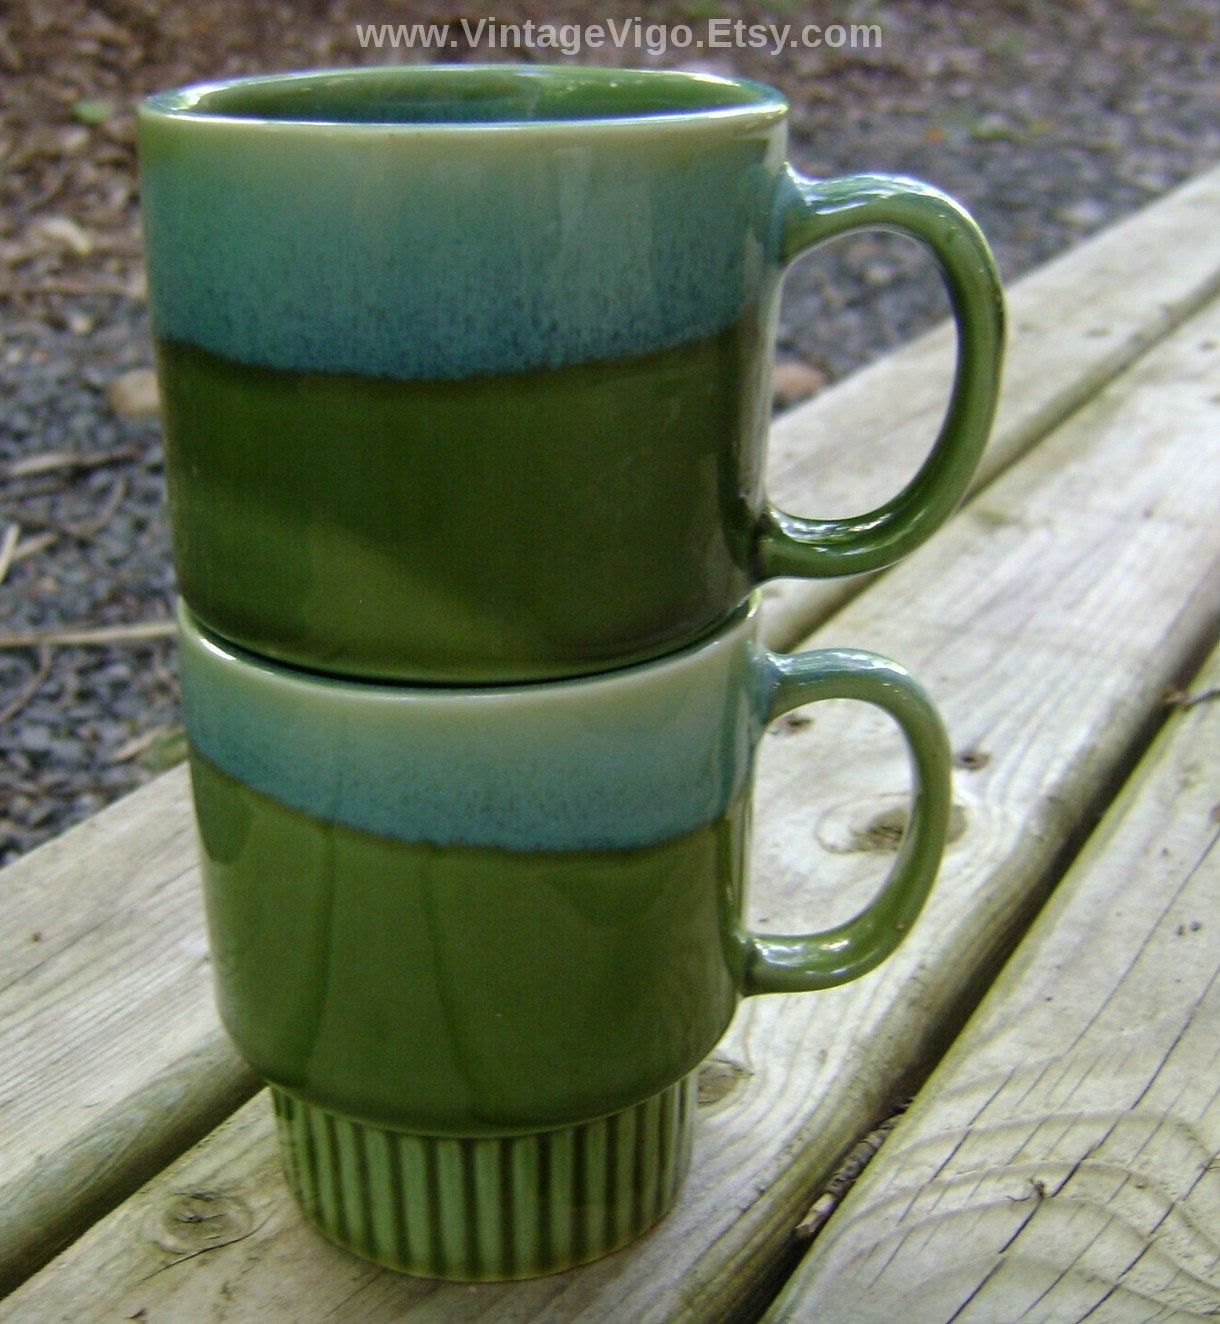 Vintage Retro Stacking Mugs Festival Stoneware Drip Glaze Cups Kitchen Ware Avocado Green Blue Embossed Art Deco Free Shipping Sale